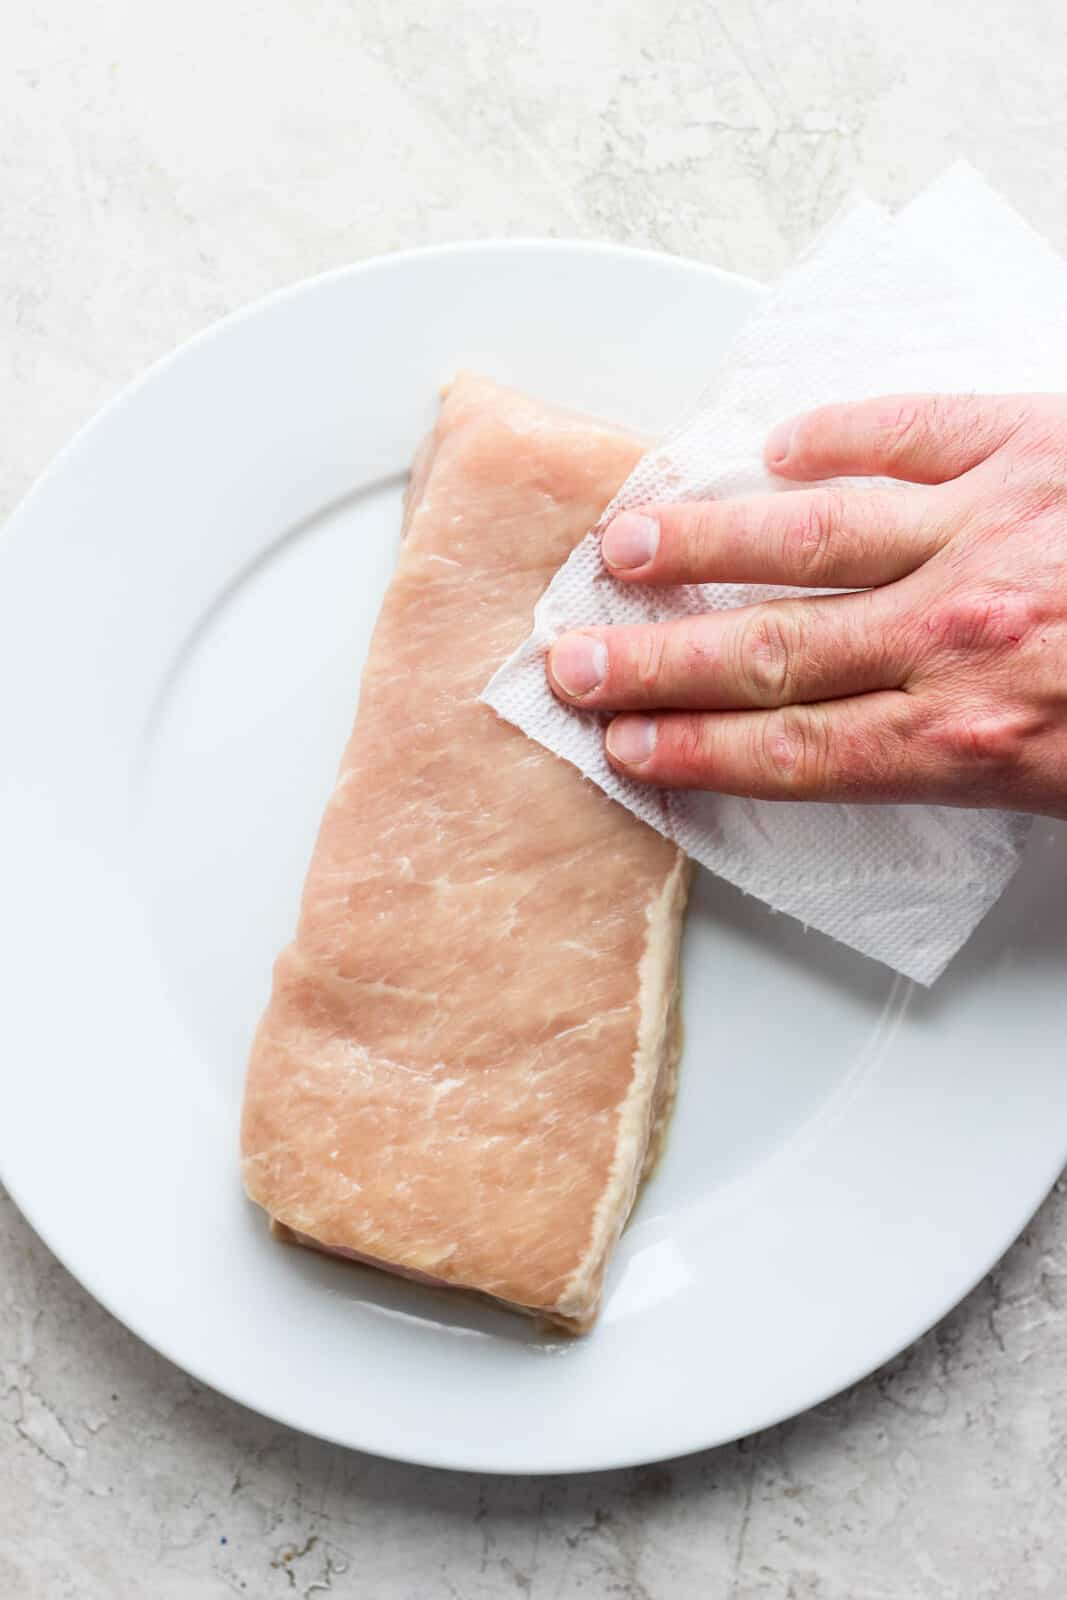 Someone patting dry a pork loin with a clean paper towel.